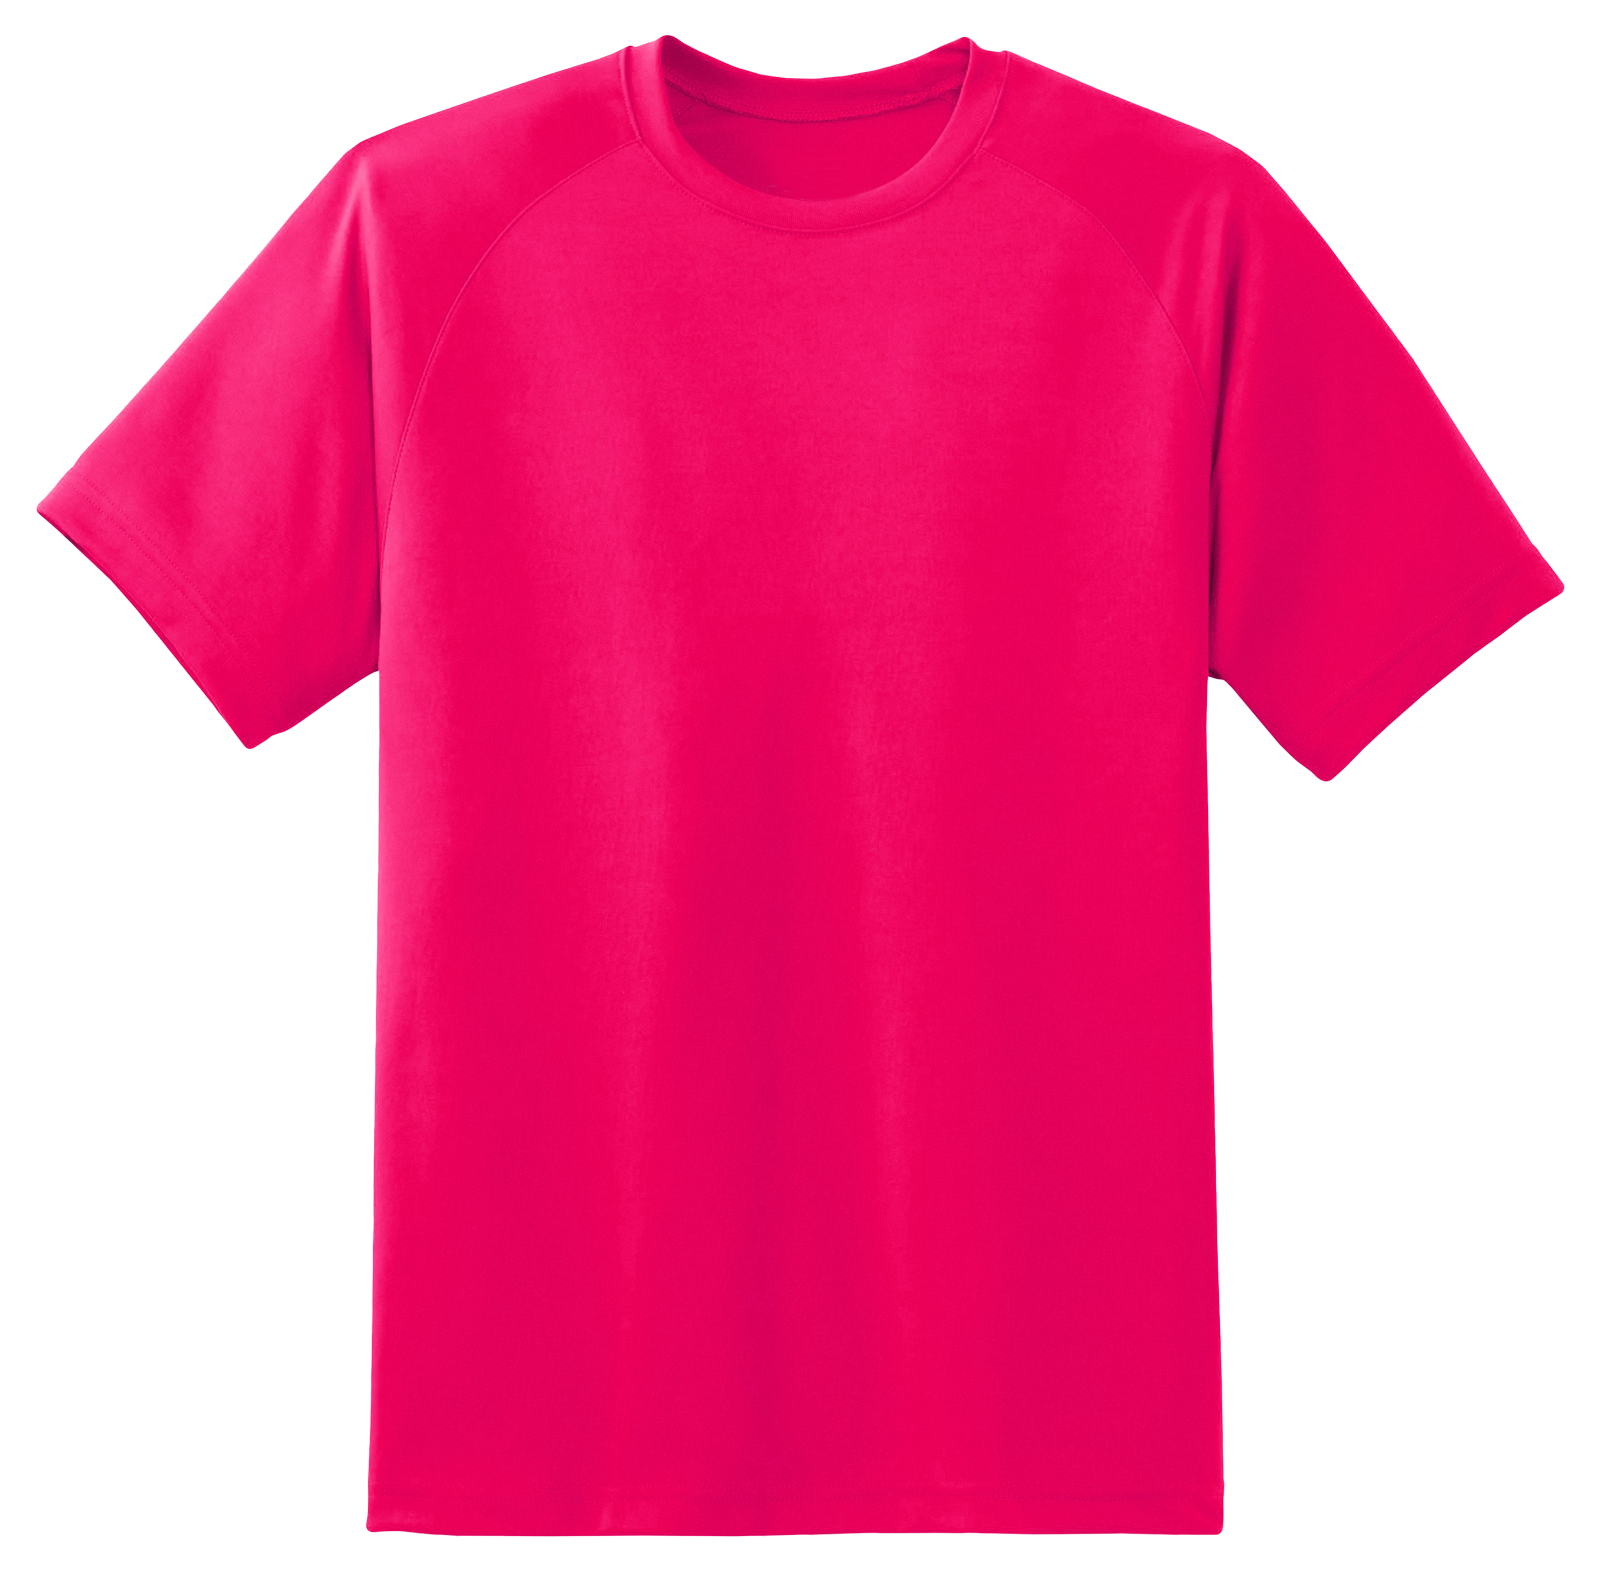 T shirt image purepng. Tshirt png banner transparent stock